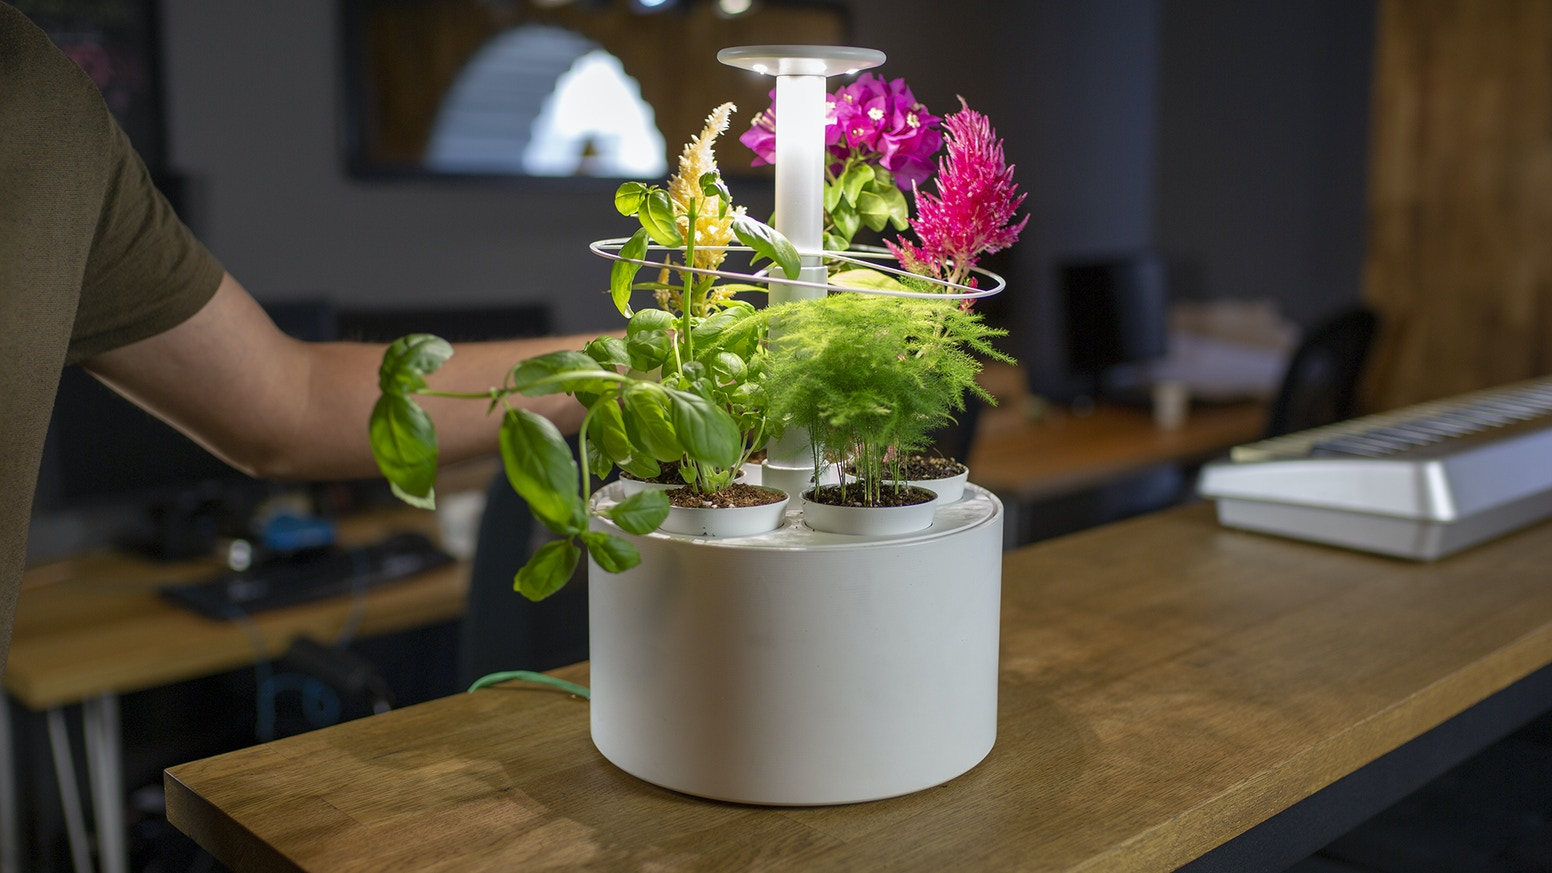 Automatic watering, adjustable lights, and app control for a smarter way to grow plants!